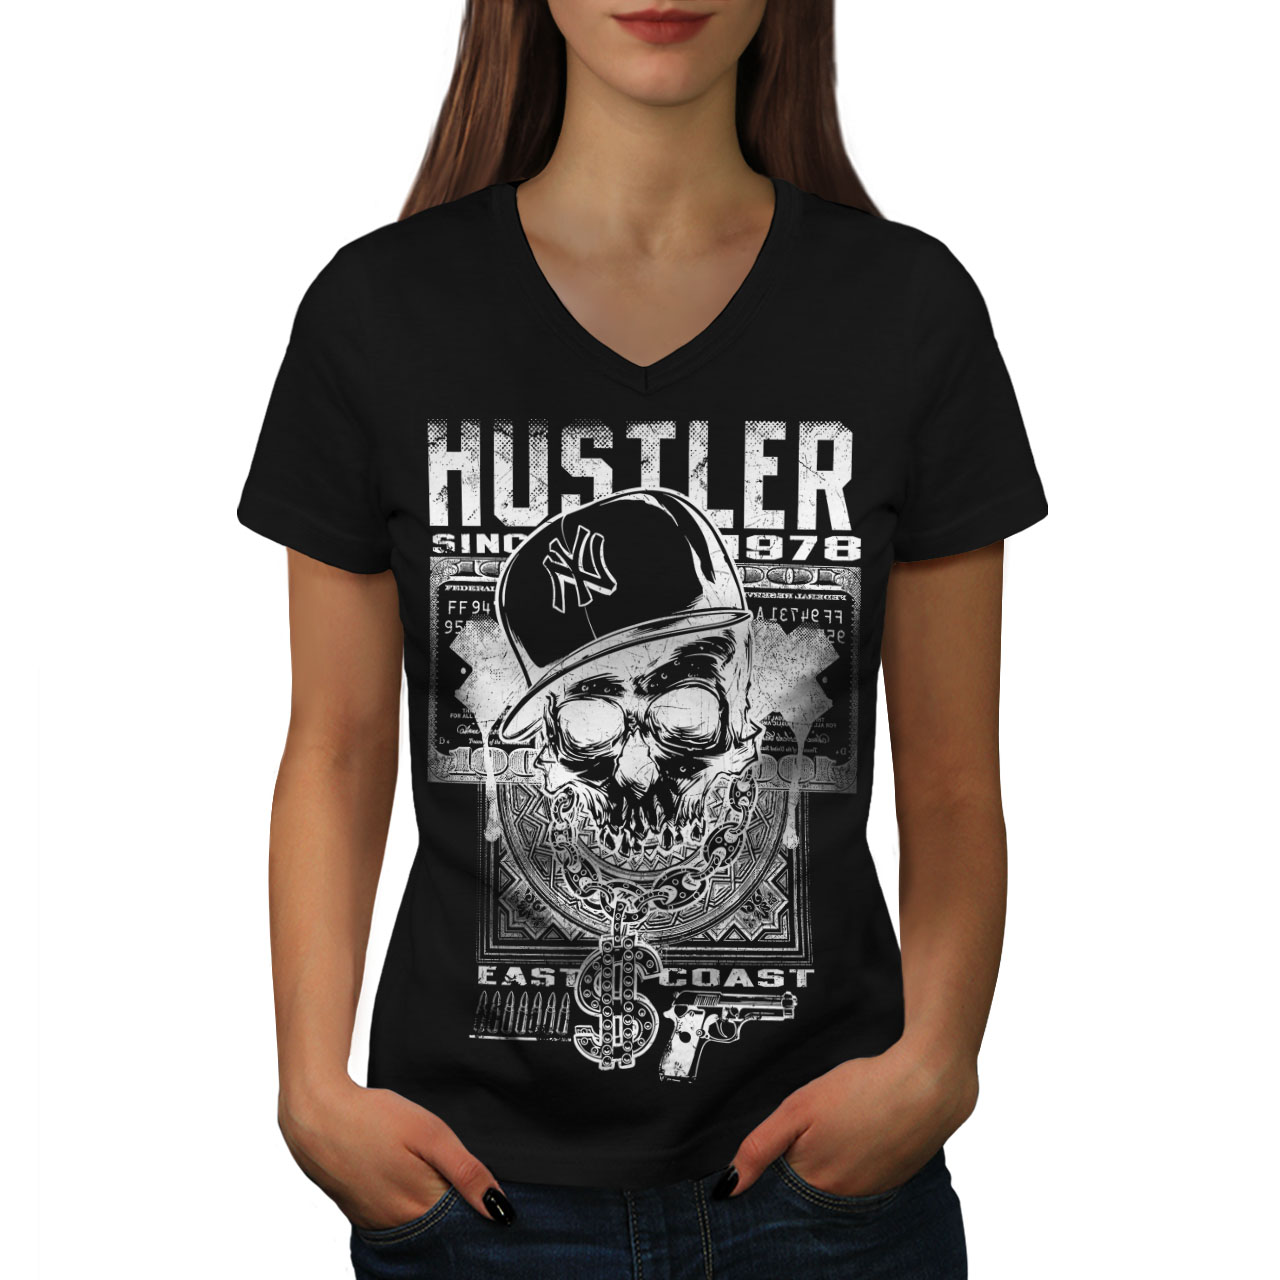 Hustler shirts women